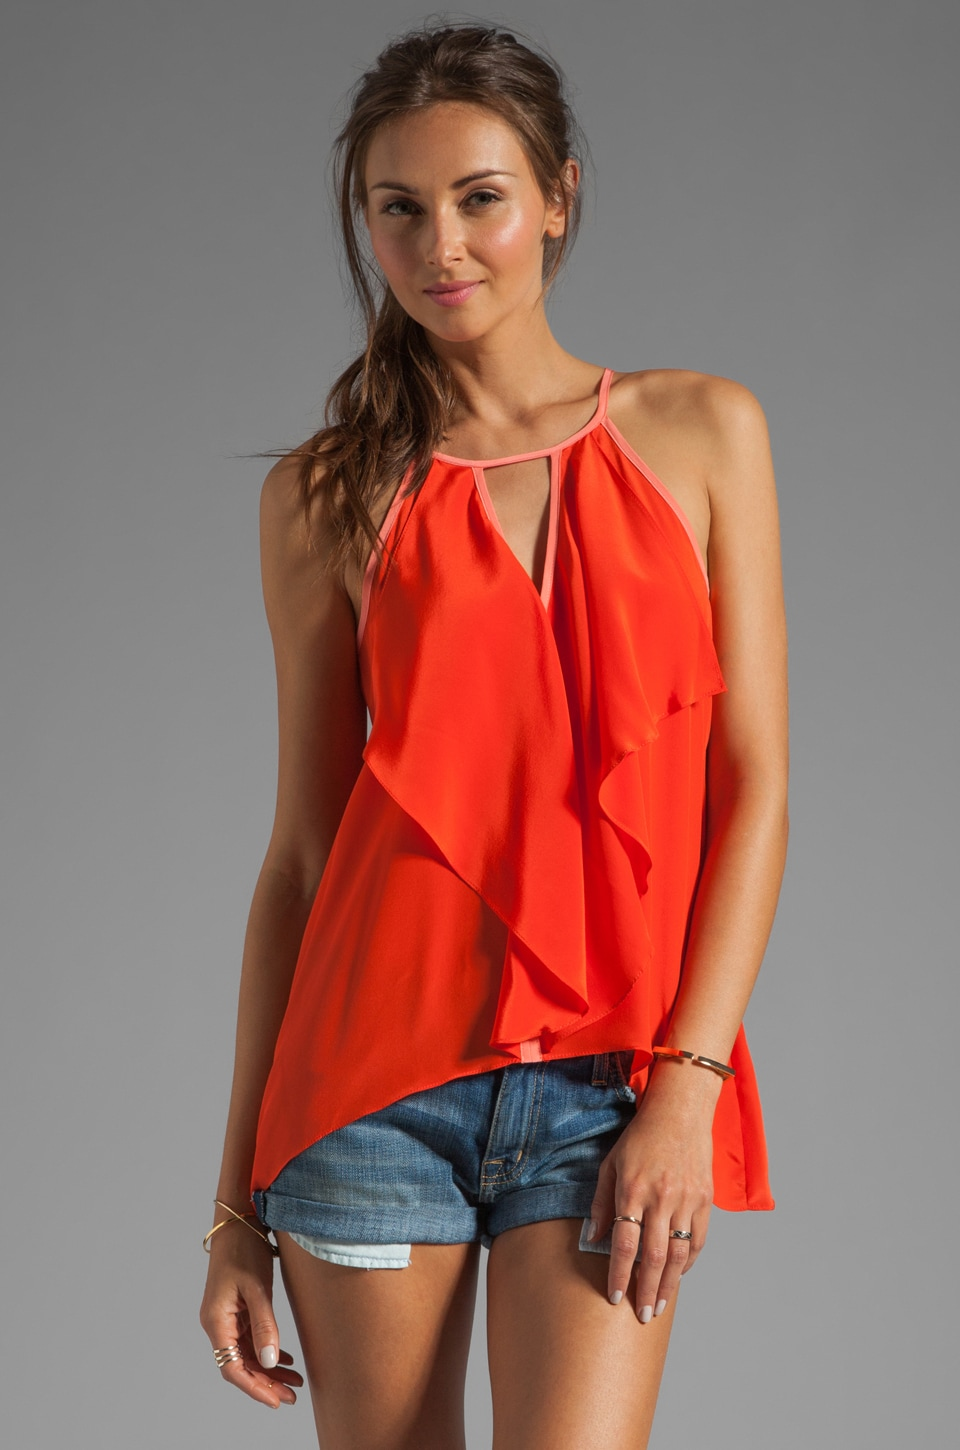 Karina Grimaldi Alli Solid Top in Orange